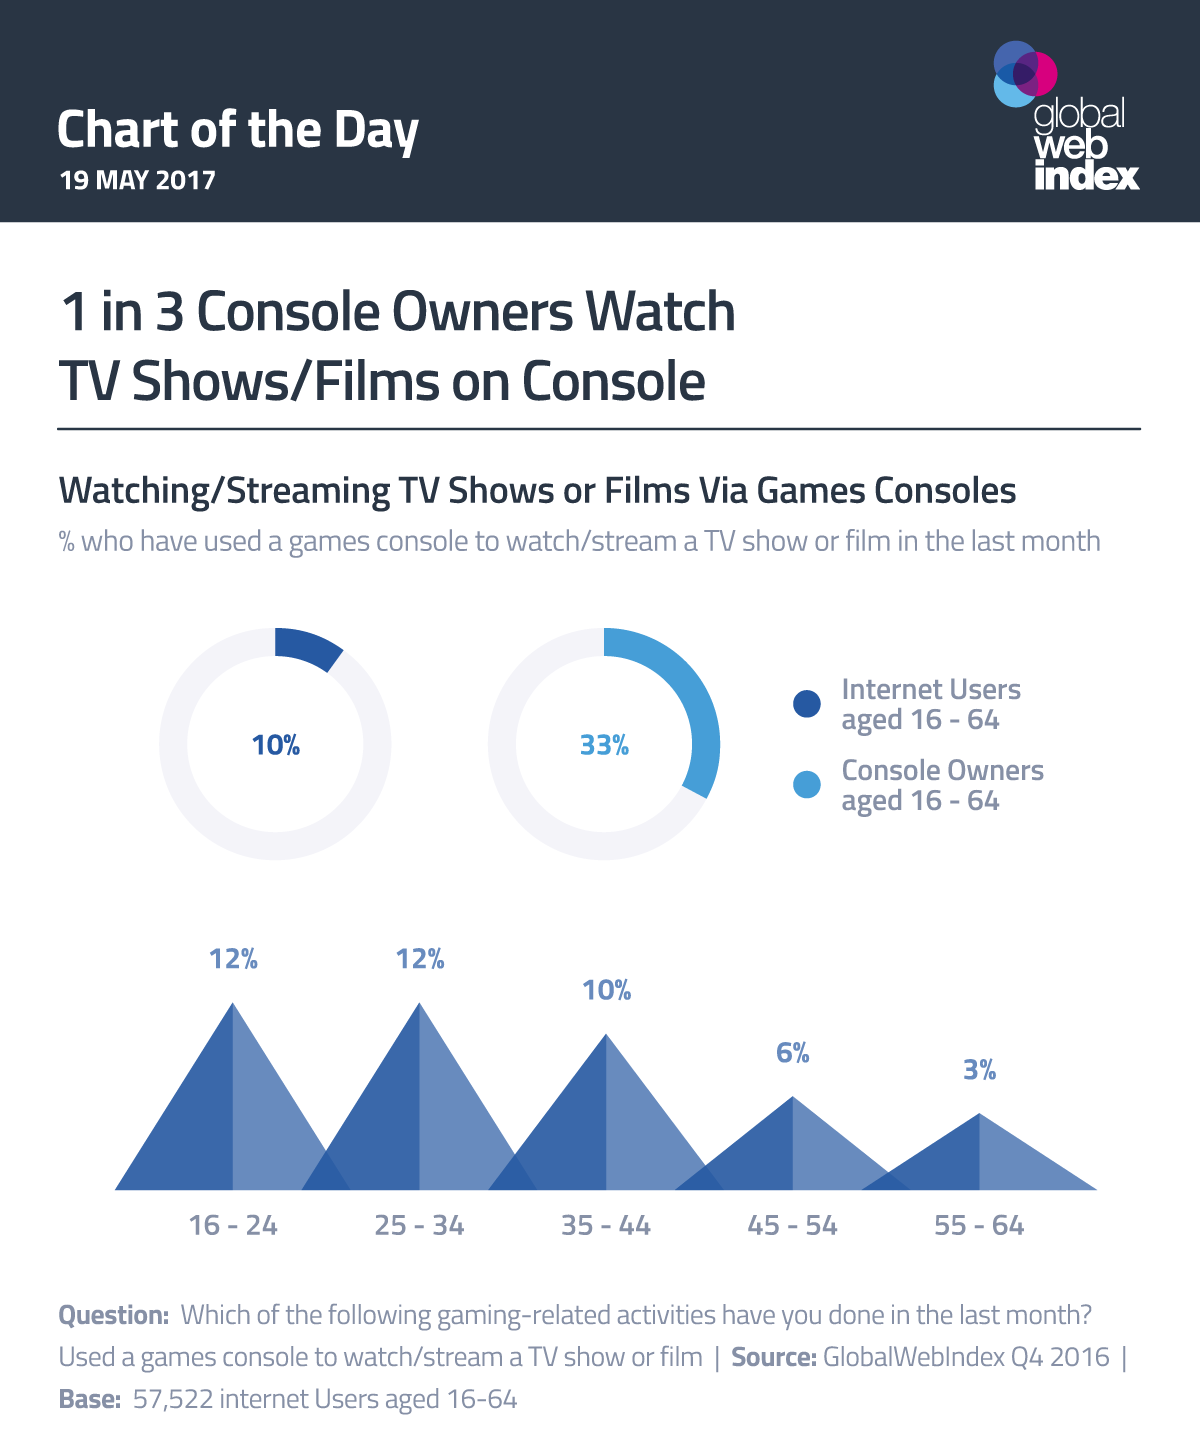 1 in 3 Console Owners Watch TV Shows/Films on Console